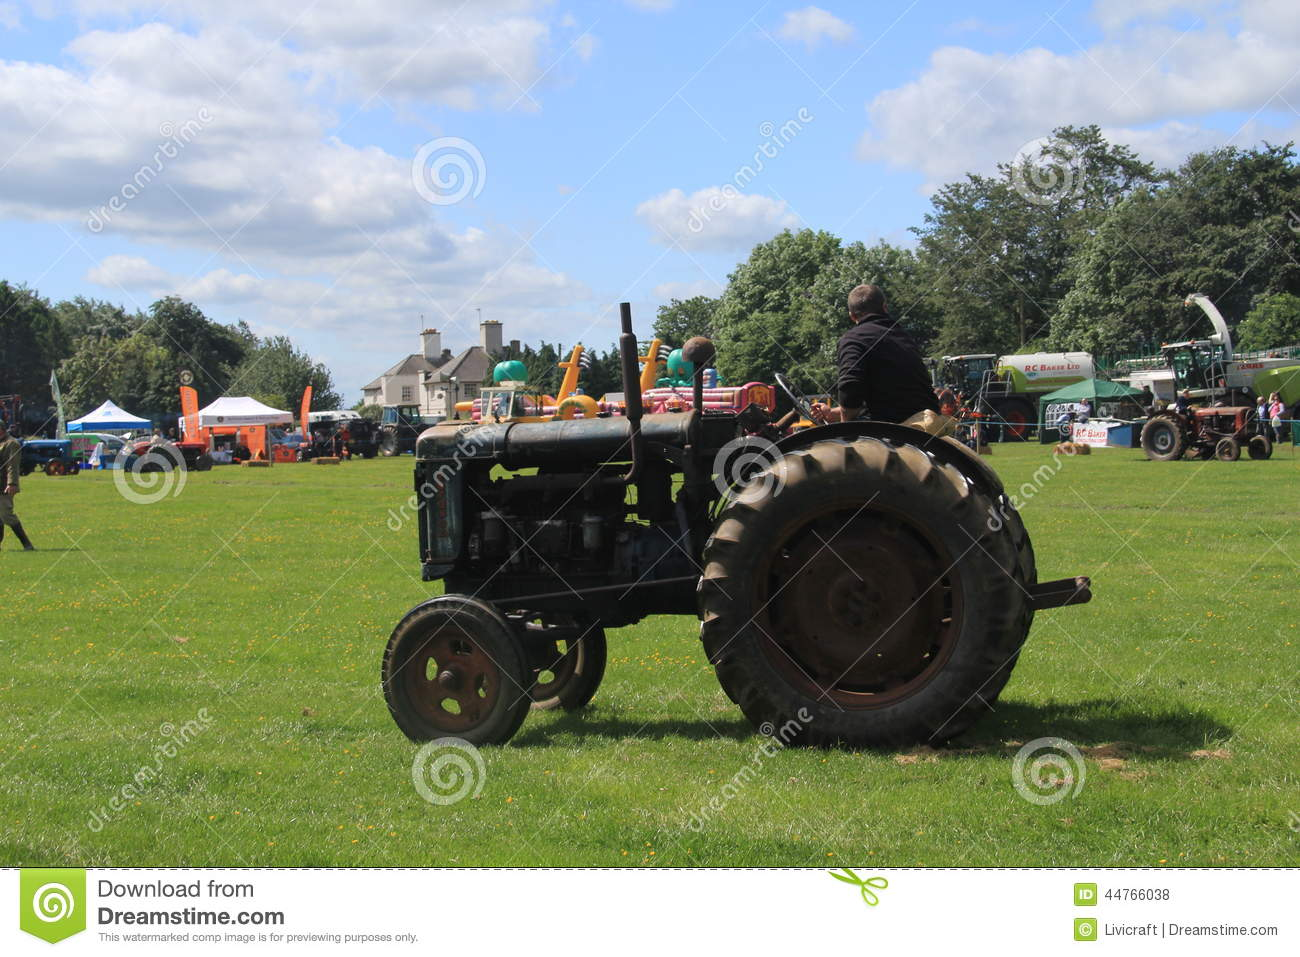 Tractor Parade Seat : Tractor id parade editorial stock photo image of farmers